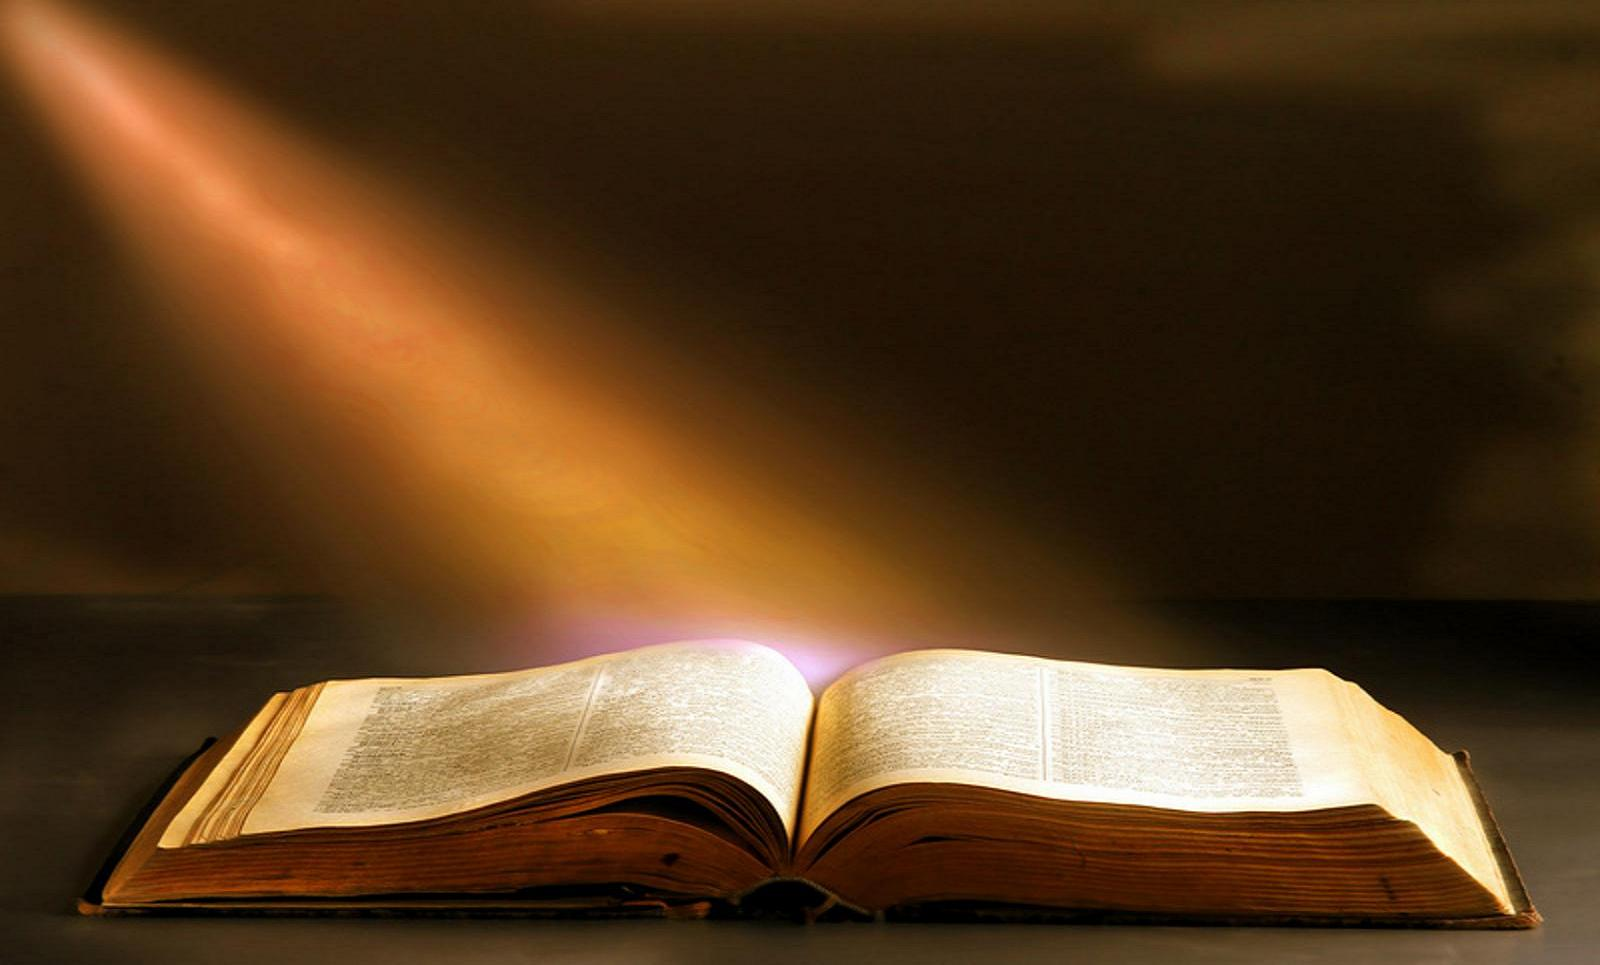 light and bible